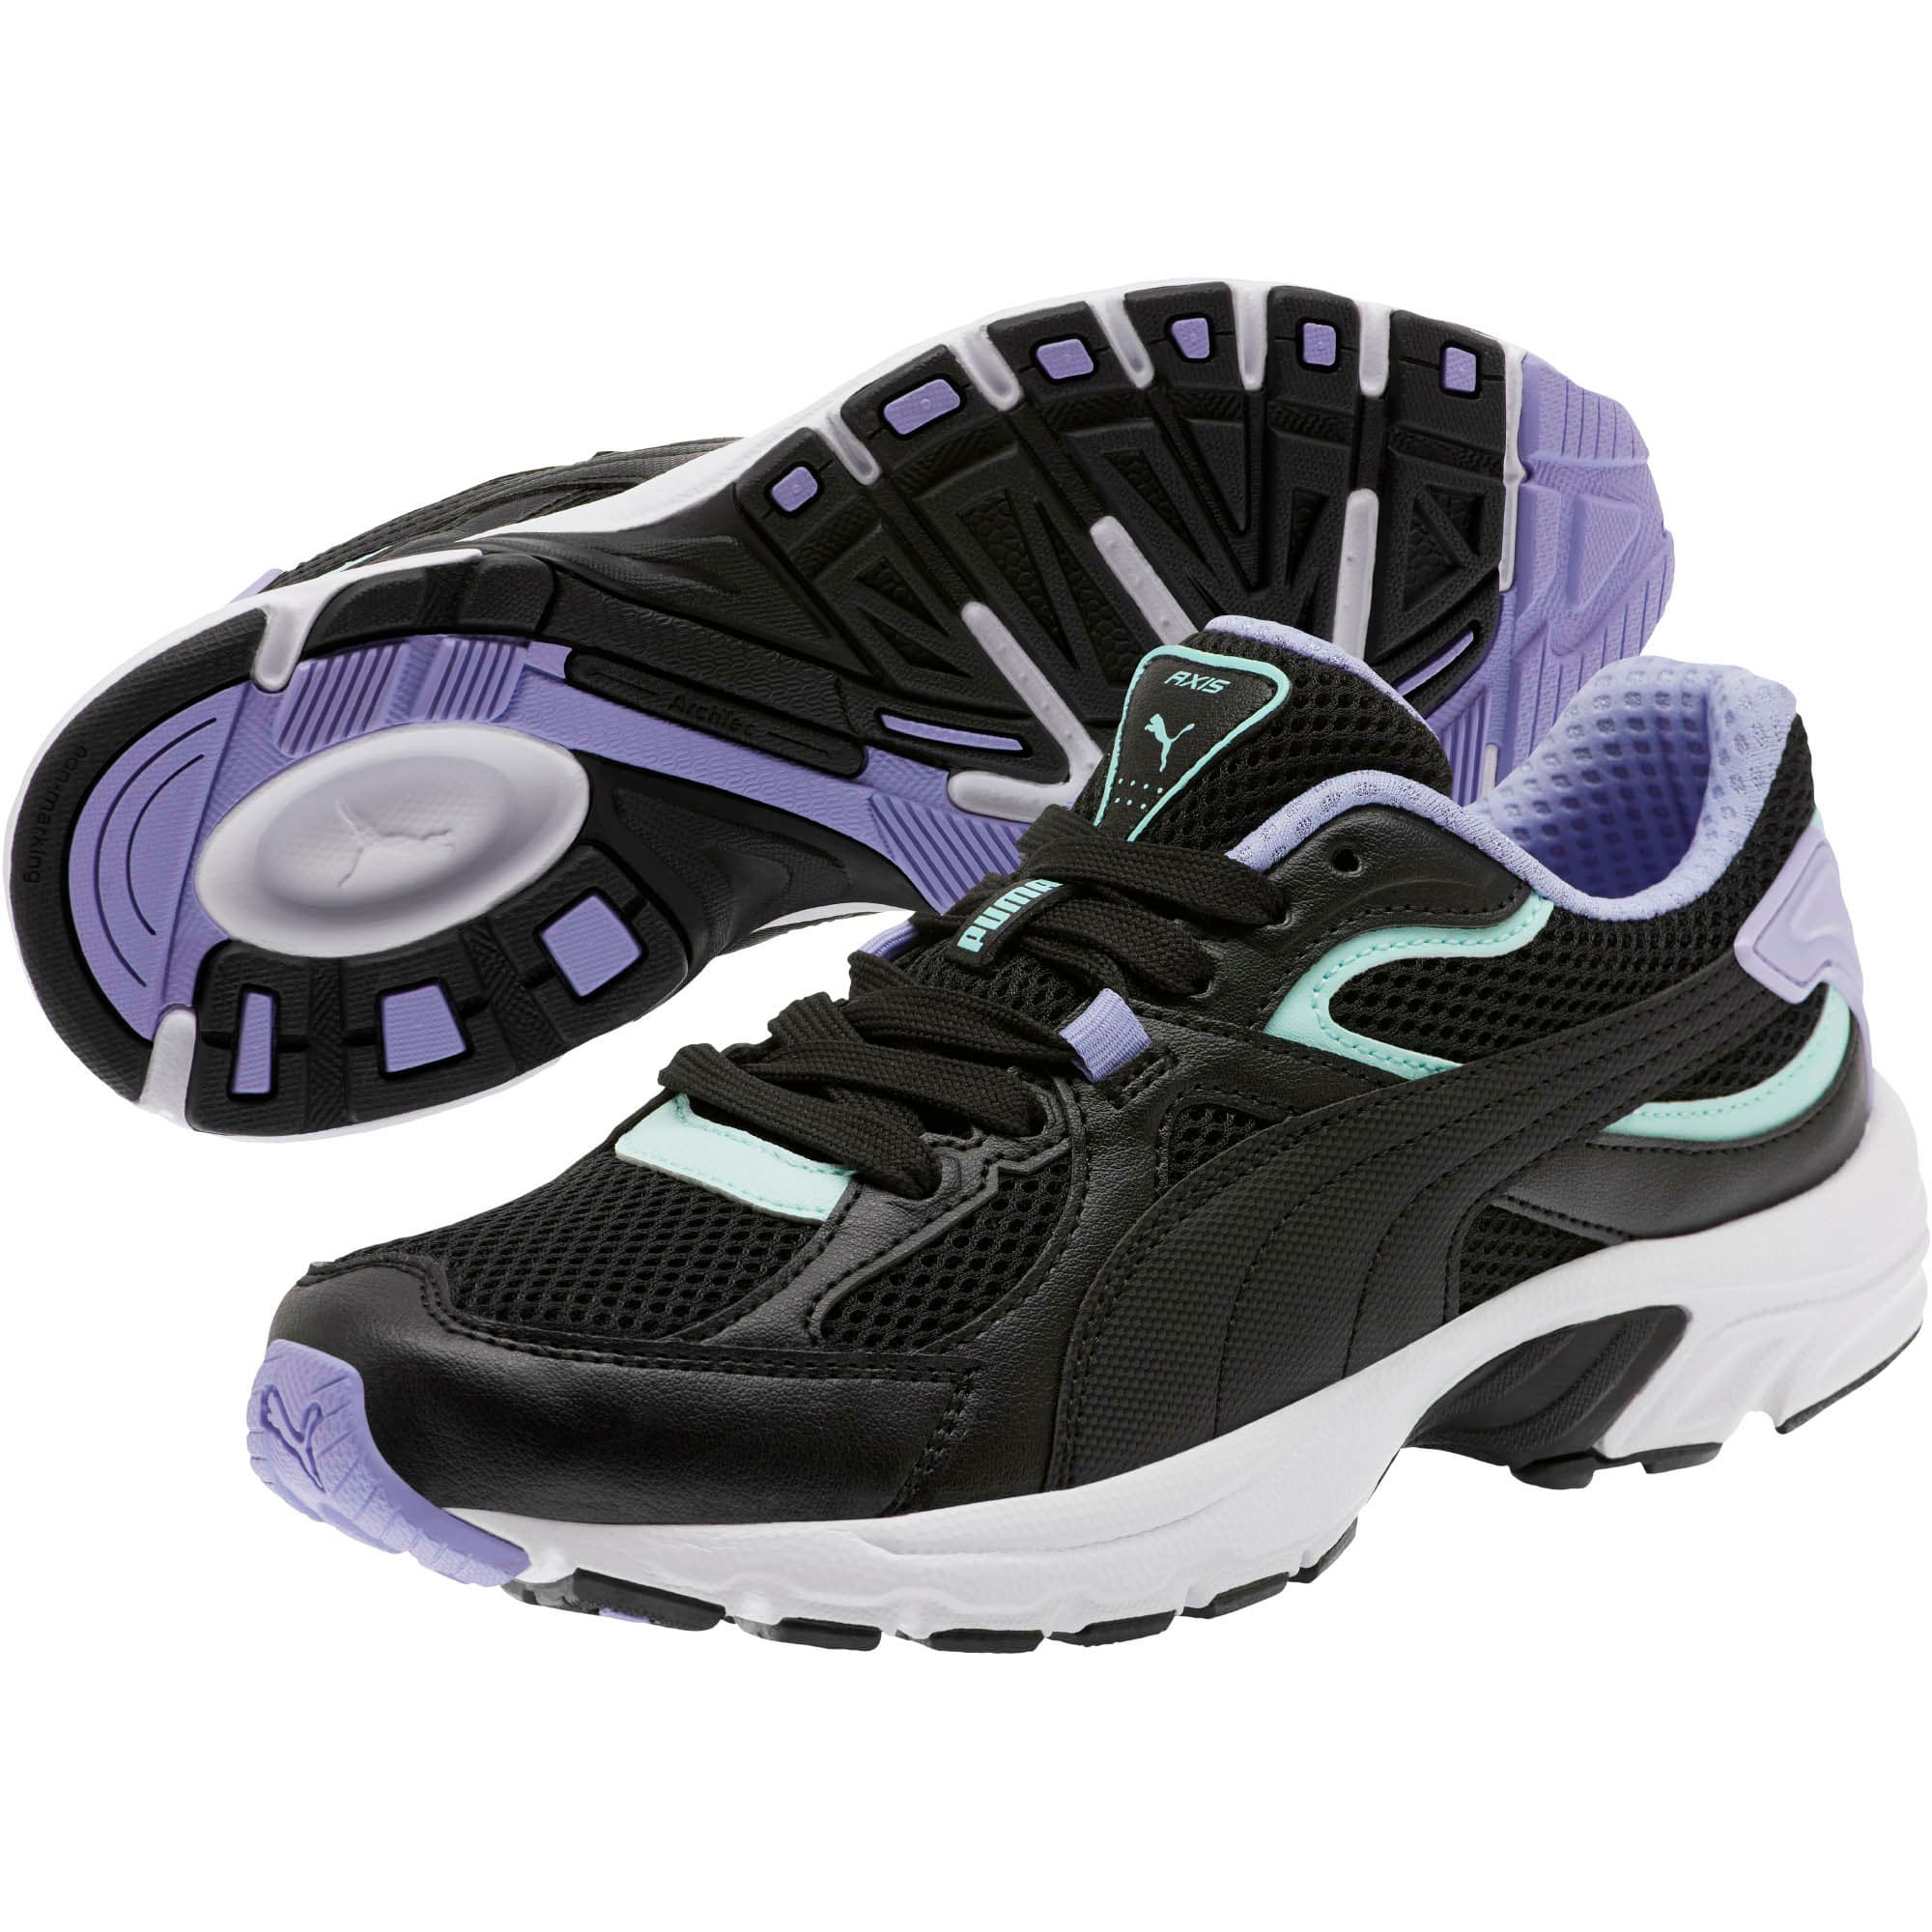 Thumbnail 2 of Axis Plus 90s Women's Sneakers, Black-F Aqua-S Lavender-Wht, medium